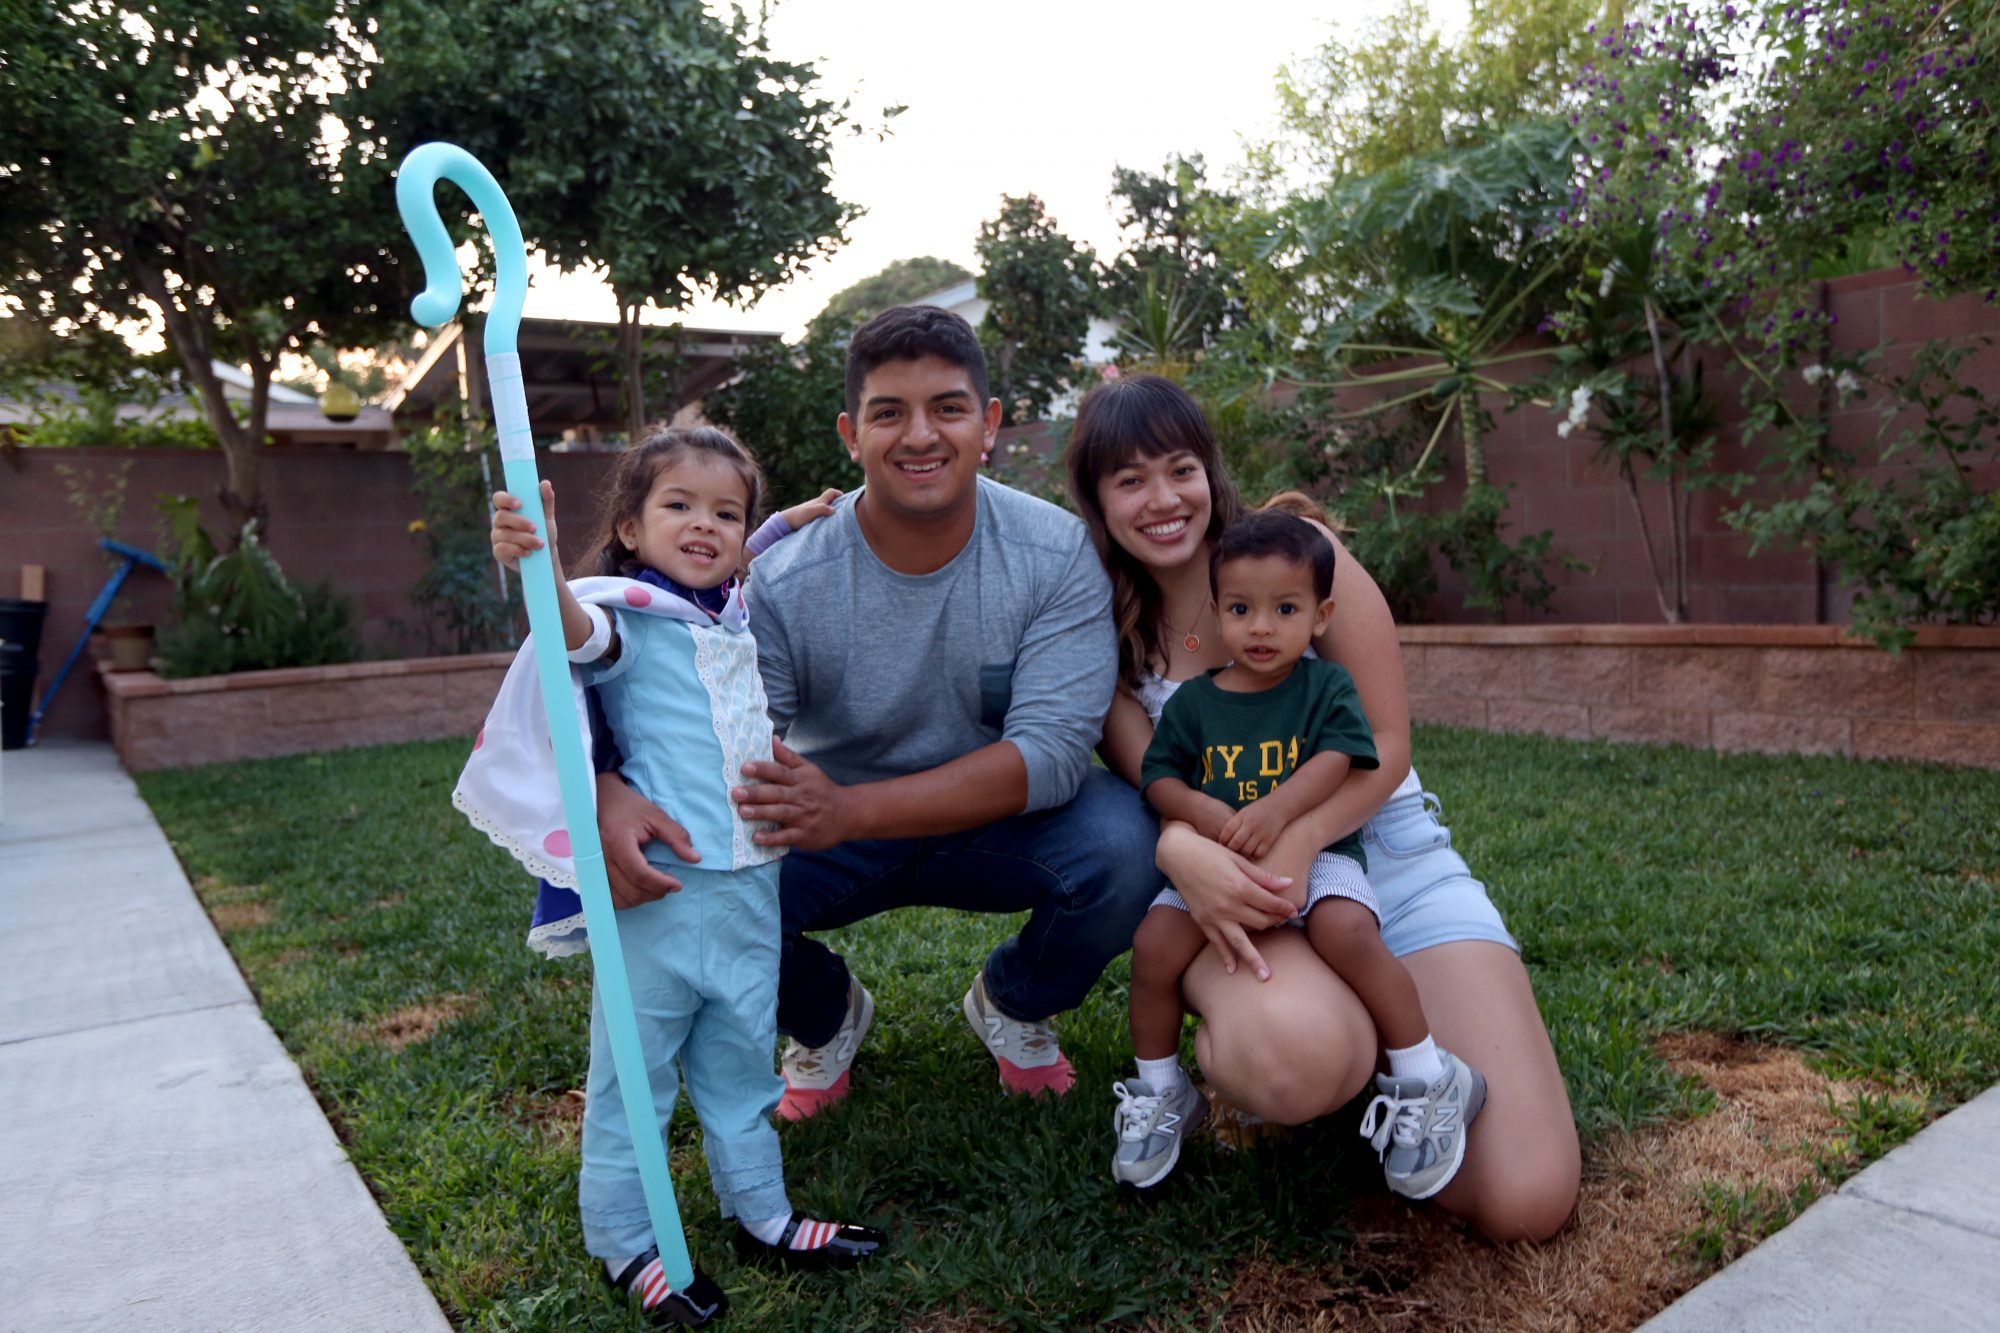 Bianca Rojas and her partner Jose Yat with their children Adeline, 2, and Jasper, 18 months. They are both enrolled full-time as college students, Jose at Cal Poly Pomona and Bianca at Cal State Long Beach and after a long day at school trying to get the kids fed and bathed and ready for bed. Jose says he tries to get his schoolwork done during breaks at school during the day. He is too tired to do any schoolwork after the kids get to bed. Their day starts around 6am as they get ready for school and to drop their kids at daycare on the way to school. They live in the renovated garage behind Jose's parents home in South Gate.